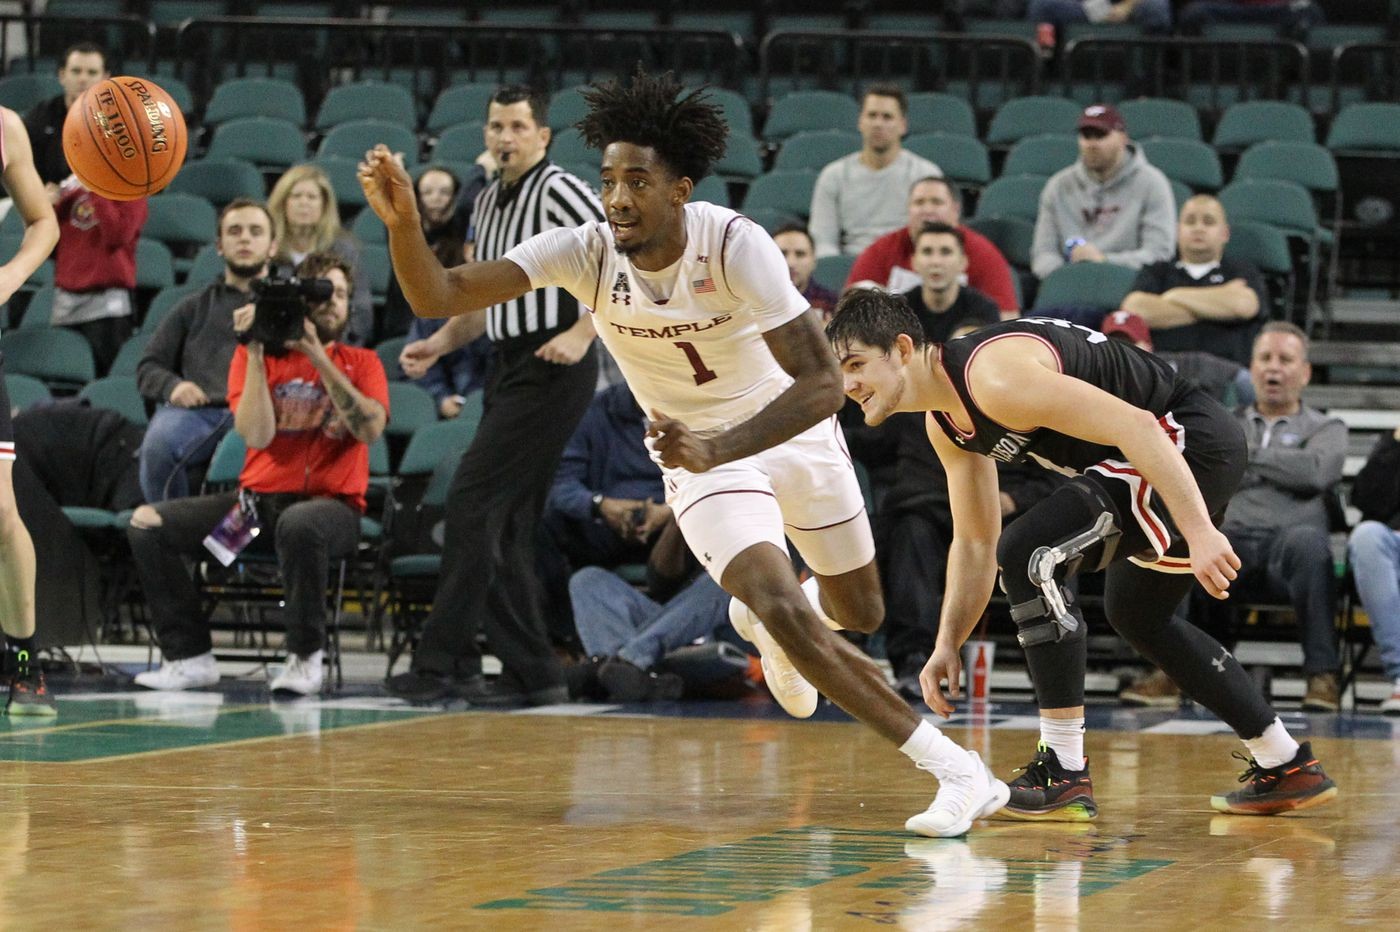 Quinton Rose dunk sparks Temple basketball win over Davidson in overtime